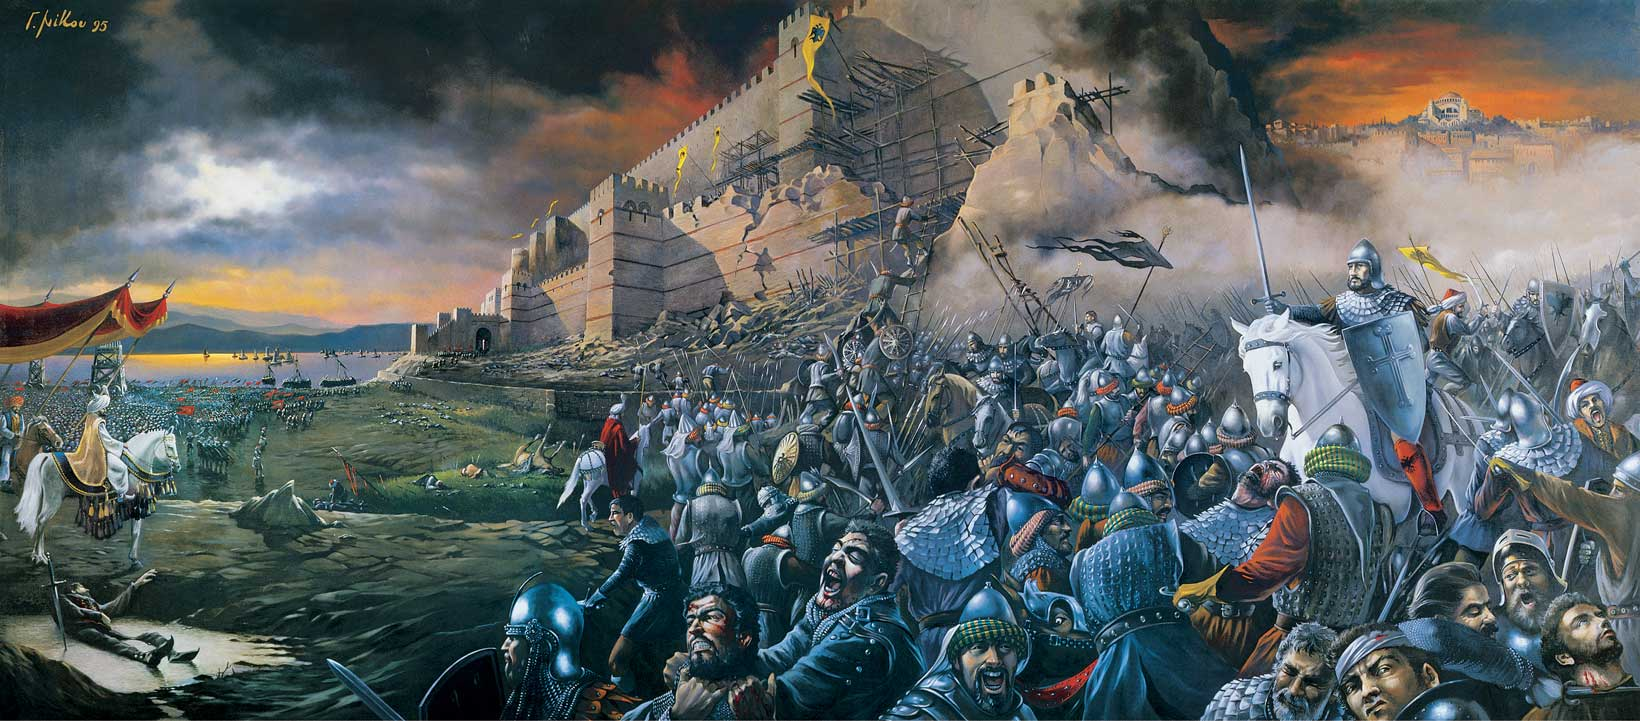 Fall Turkey Wallpaper A Tale Of Blood And Slaughter The Fall Of Constantinople